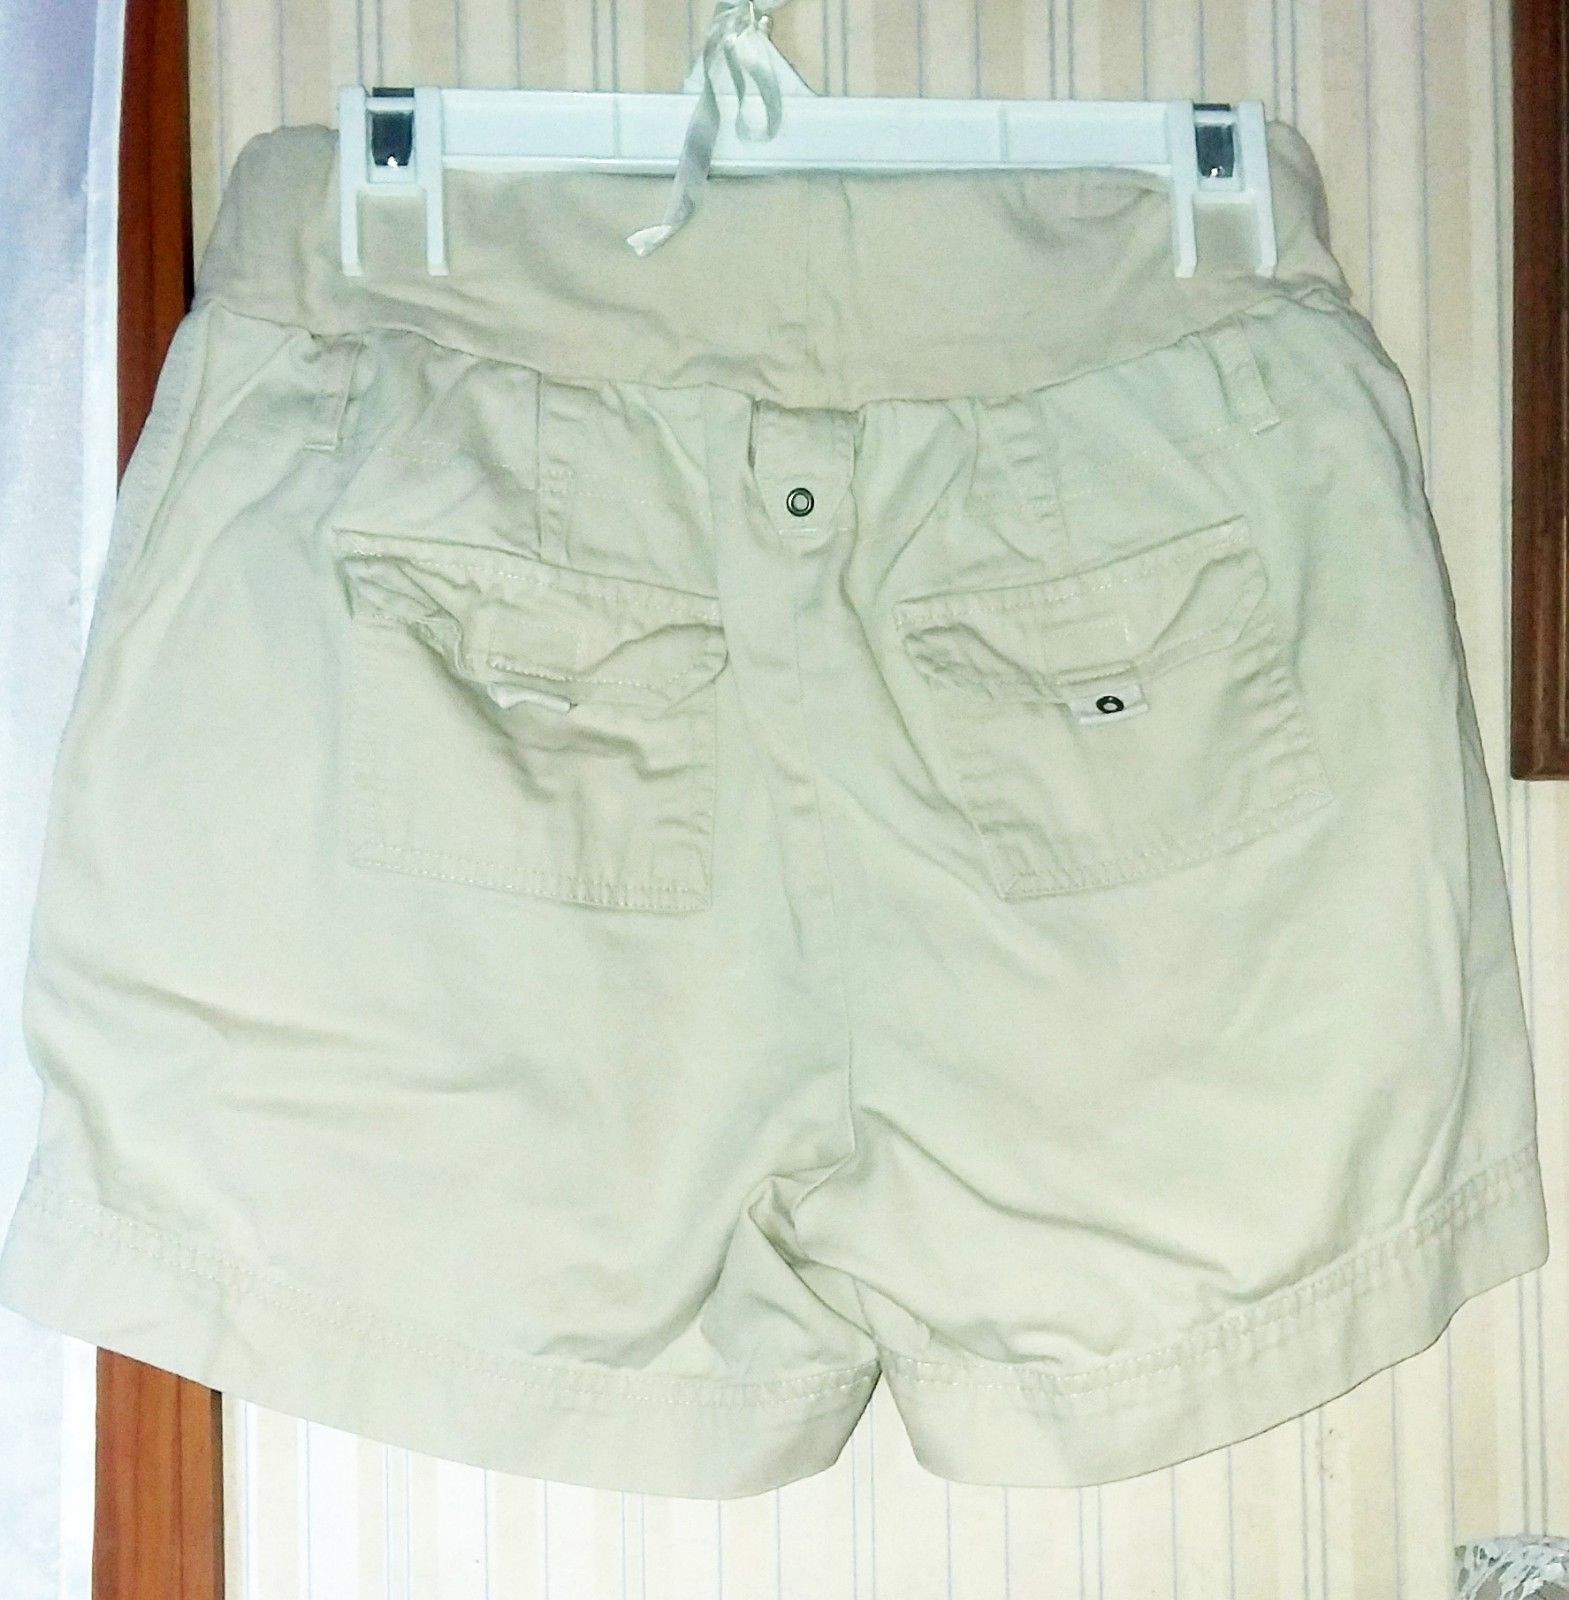 dc84b54dc5be7 Motherhood Maternity Women's Shorts Size S & and 50 similar items